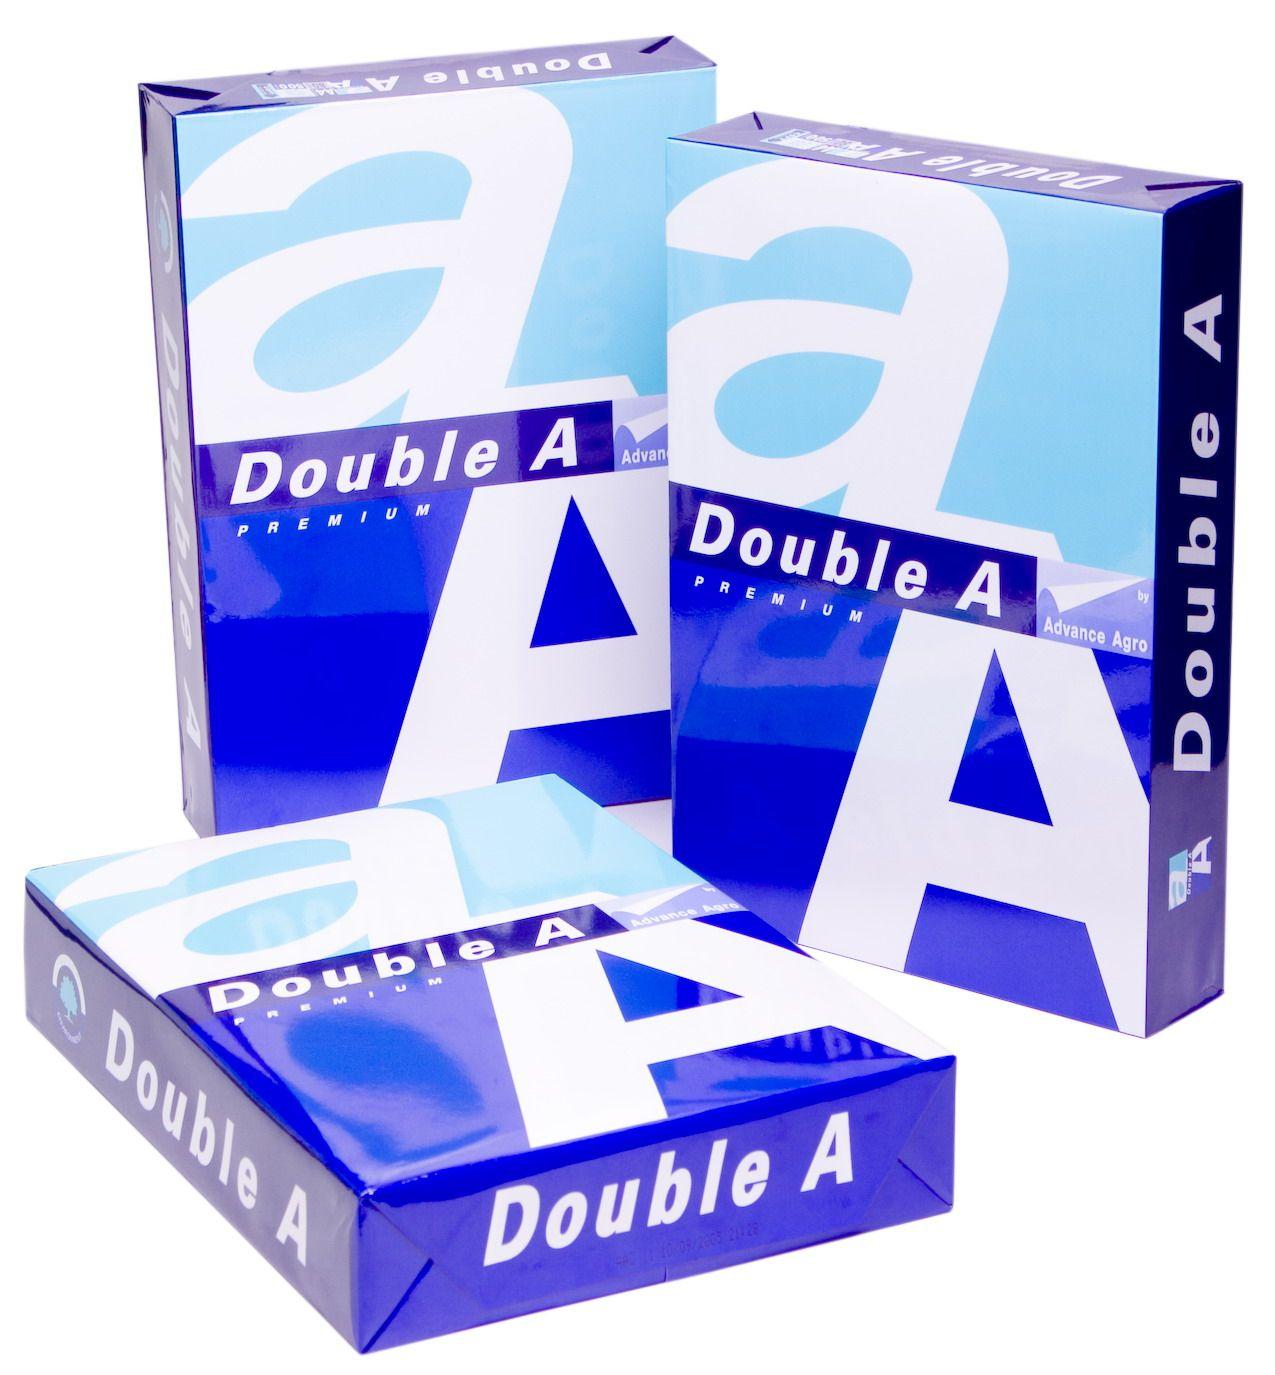 Double A4 Papers